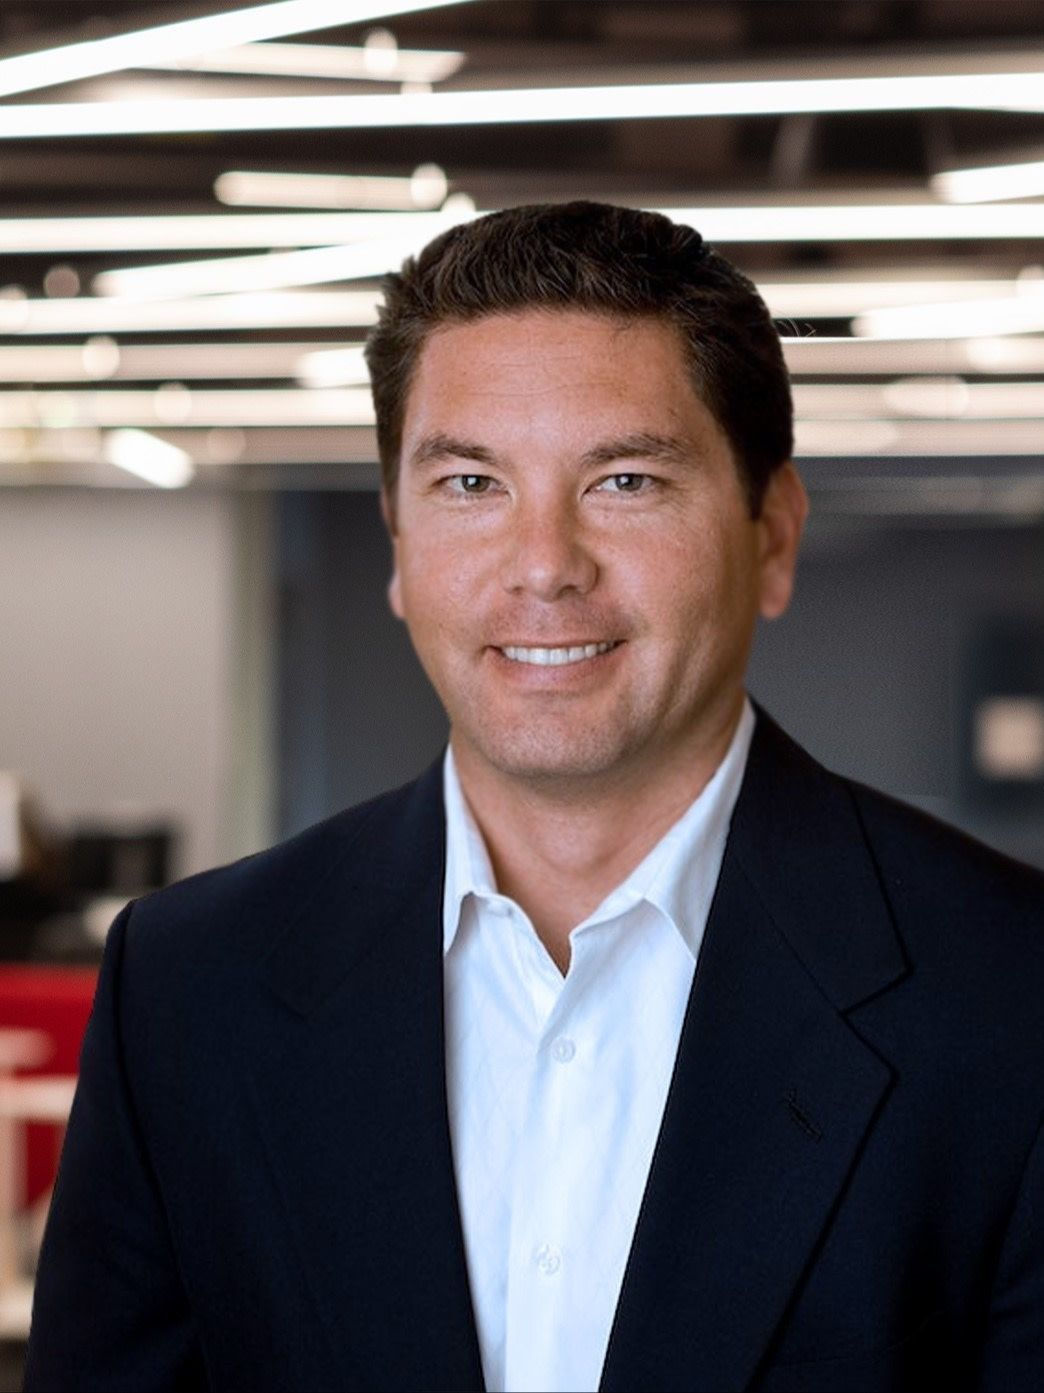 Runway Growth Capital Adds Rob Lake to Head its New Life Sciences Practice, Runway Growth Capital